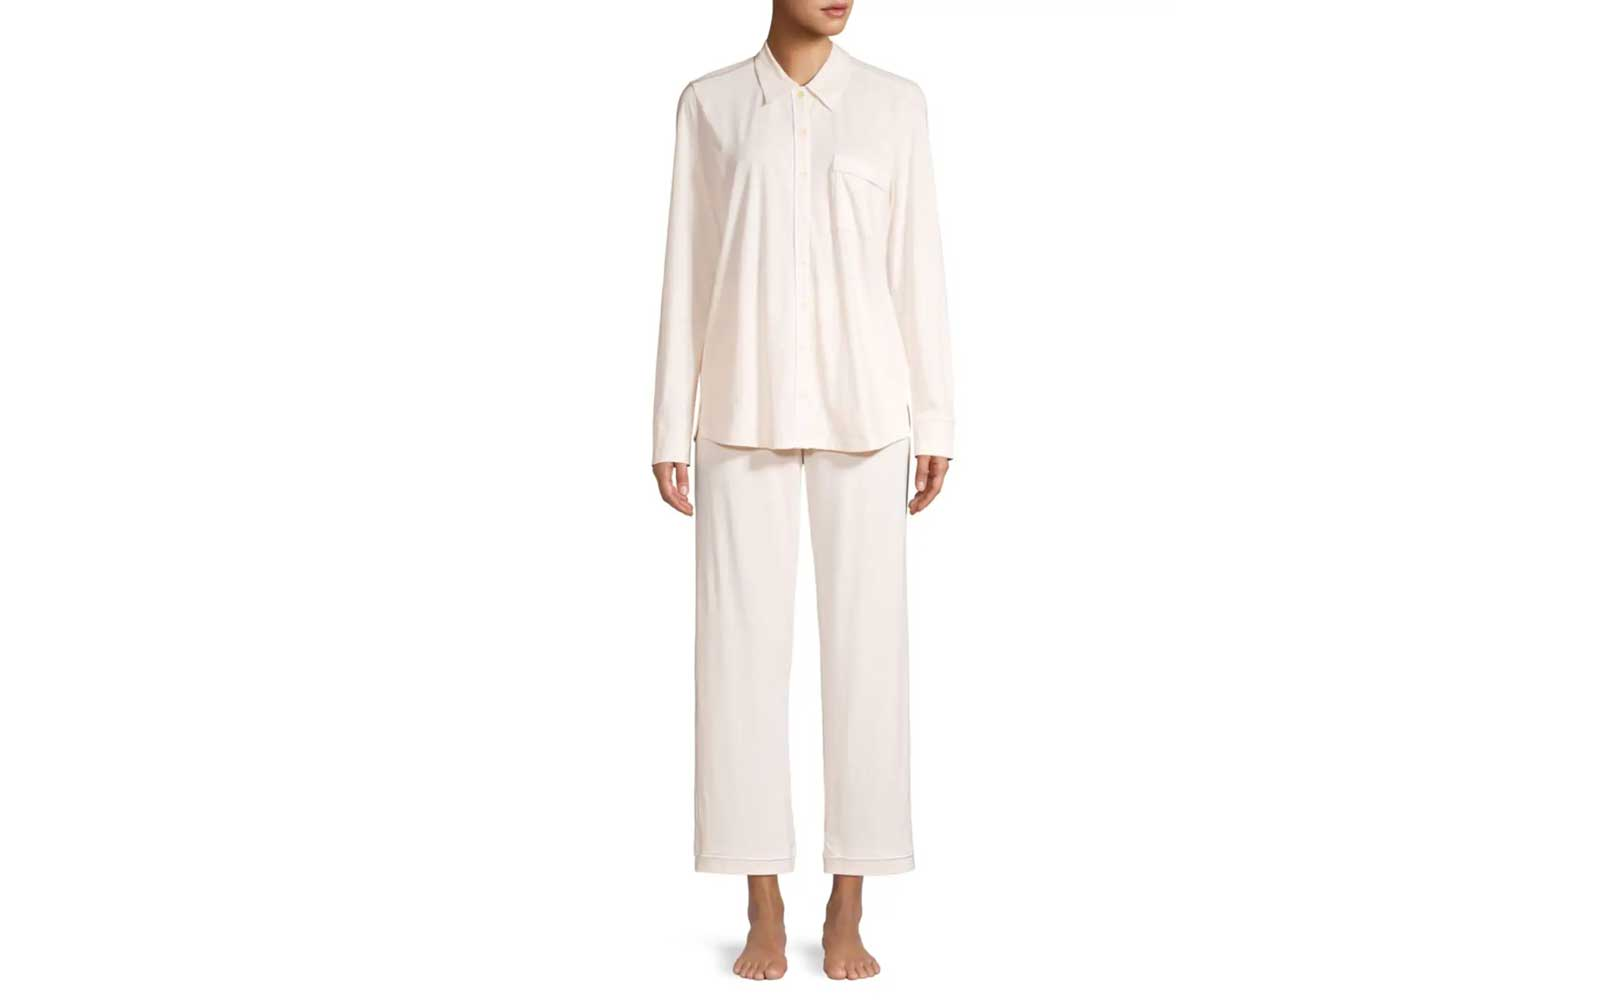 Pajama set - Products to pack for an Alaskan cruise